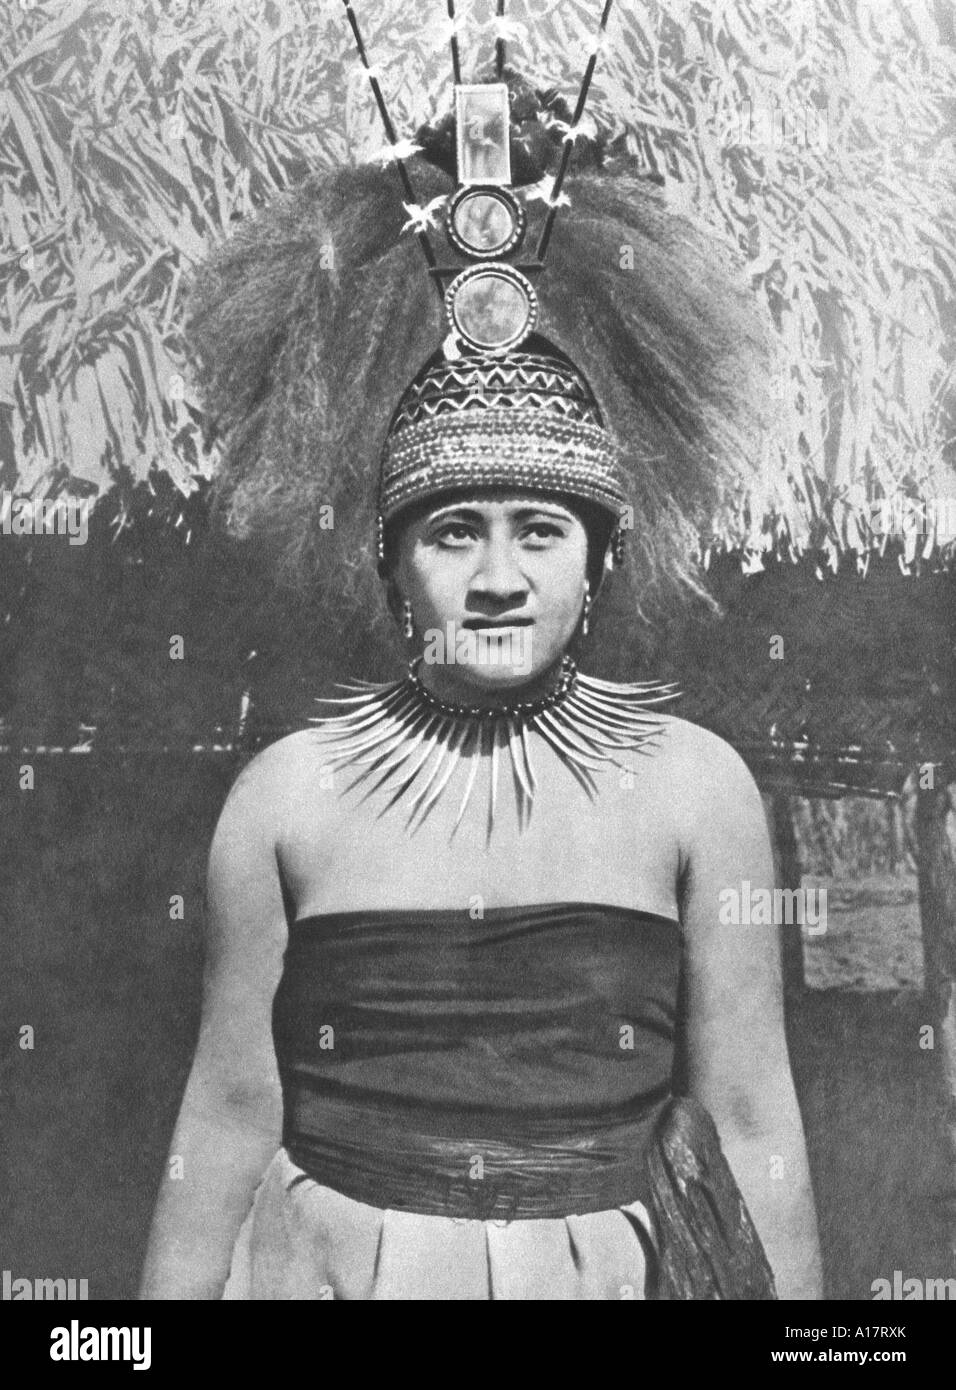 Historical Photograph of Samoan Princess in Traditional Dress - Stock Image